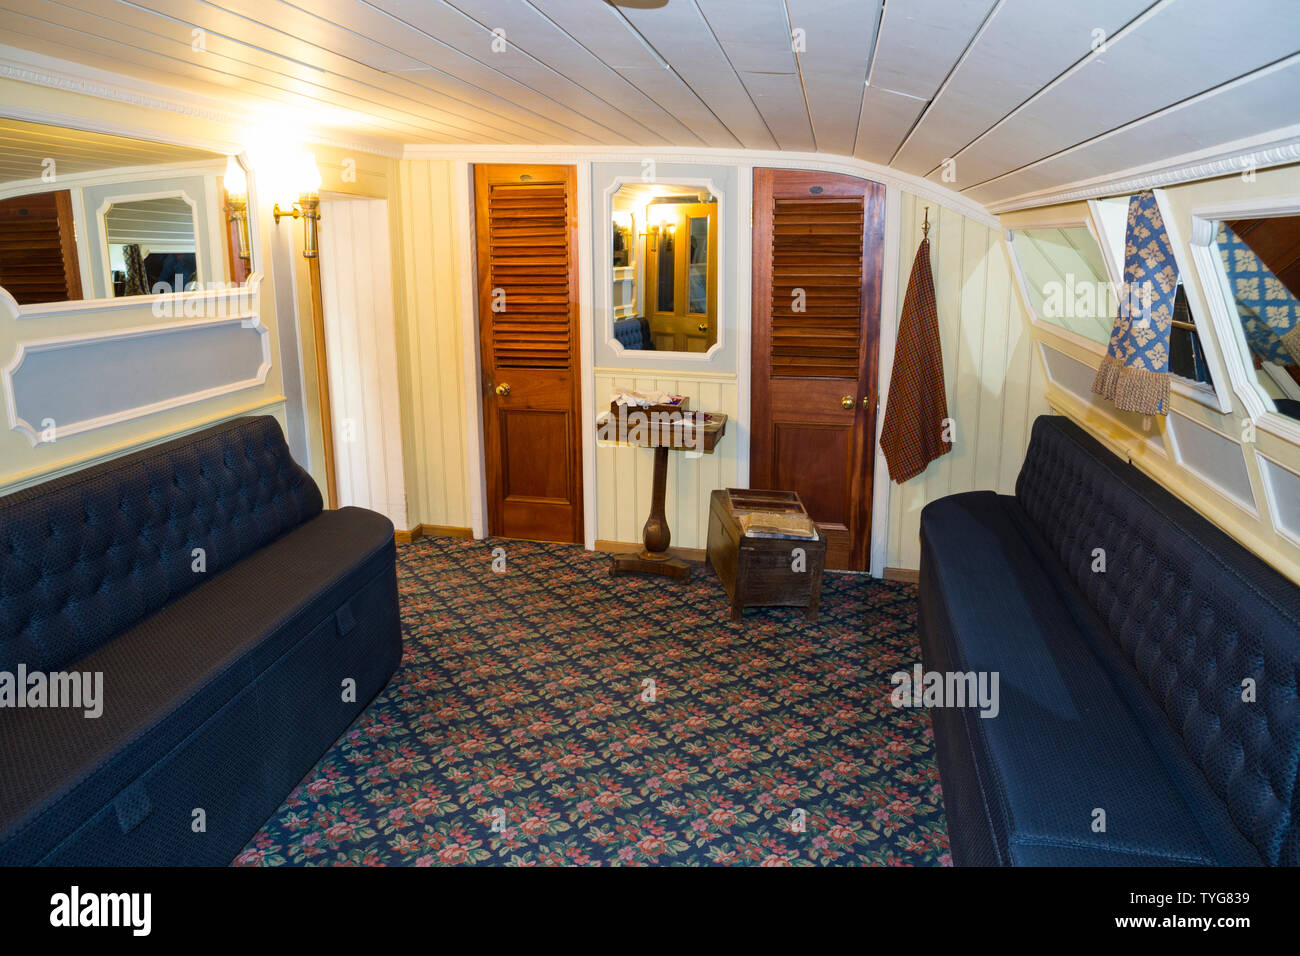 Ladies Boudoir room / rooms lounge with sofa seating for first class passengers on board the SS Great Britain. Promenade saloon deck on board the SS Great Britain. Brunel ship Brunel's ship is now a museum attraction in Bristol. UK (109) Stock Photo